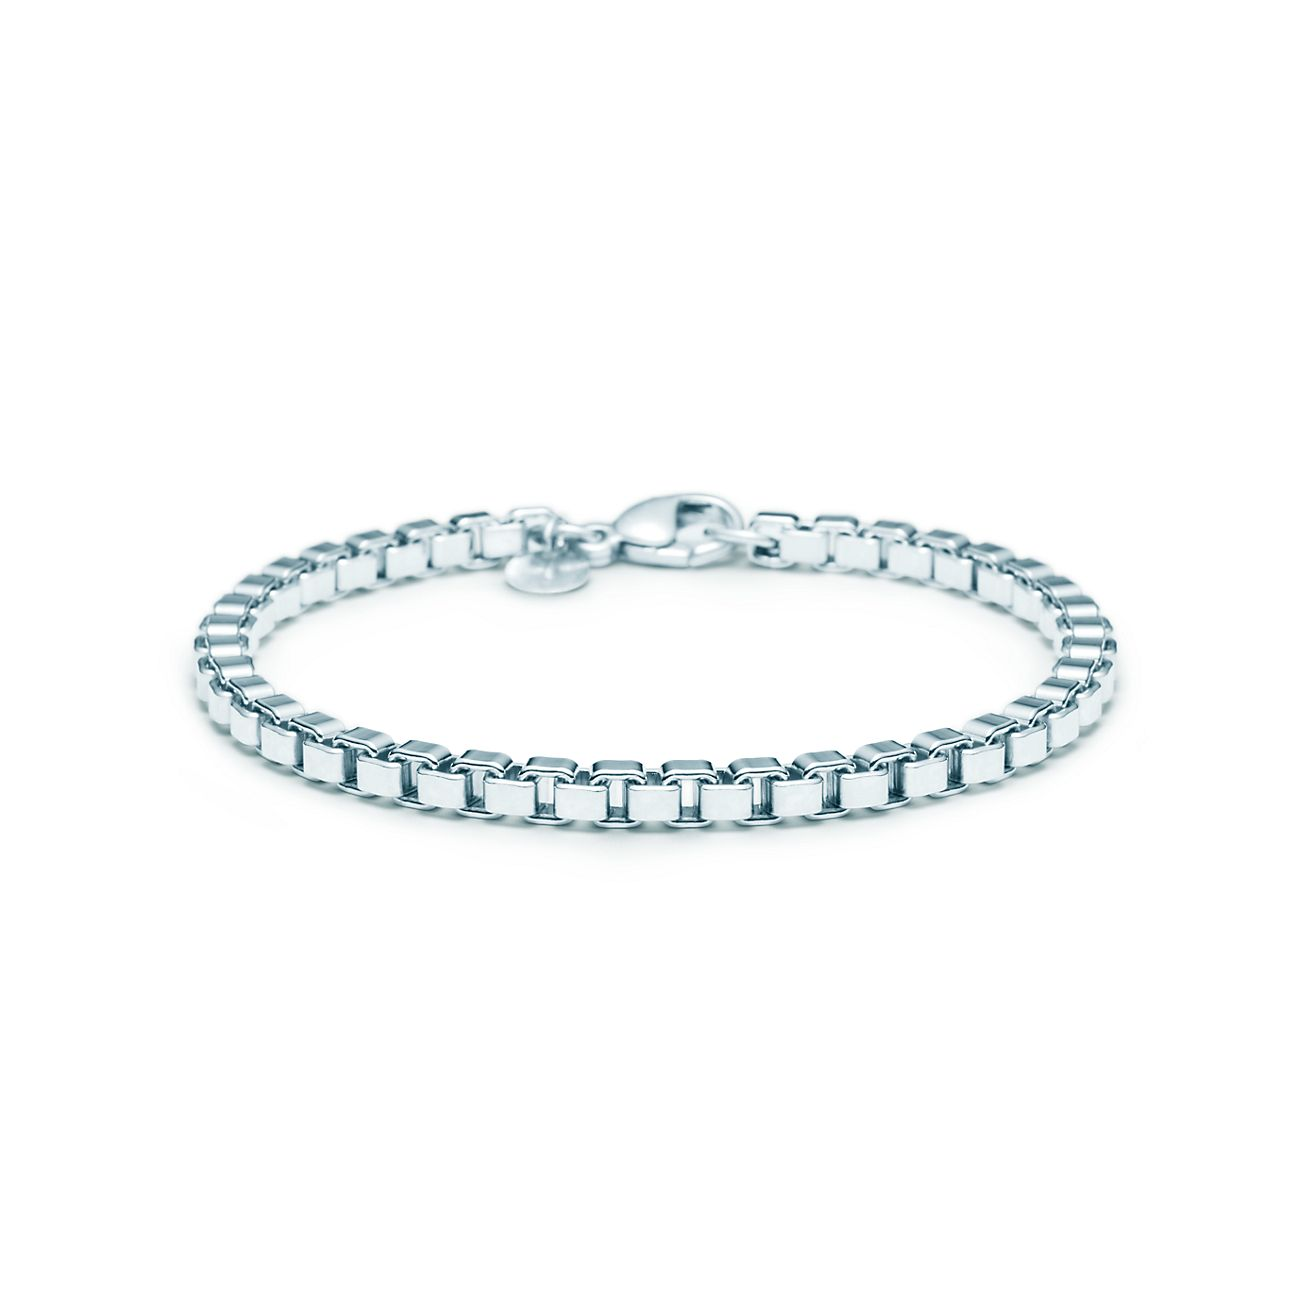 Venetian Link bracelet in sterling silver. | Tiffany & Co.